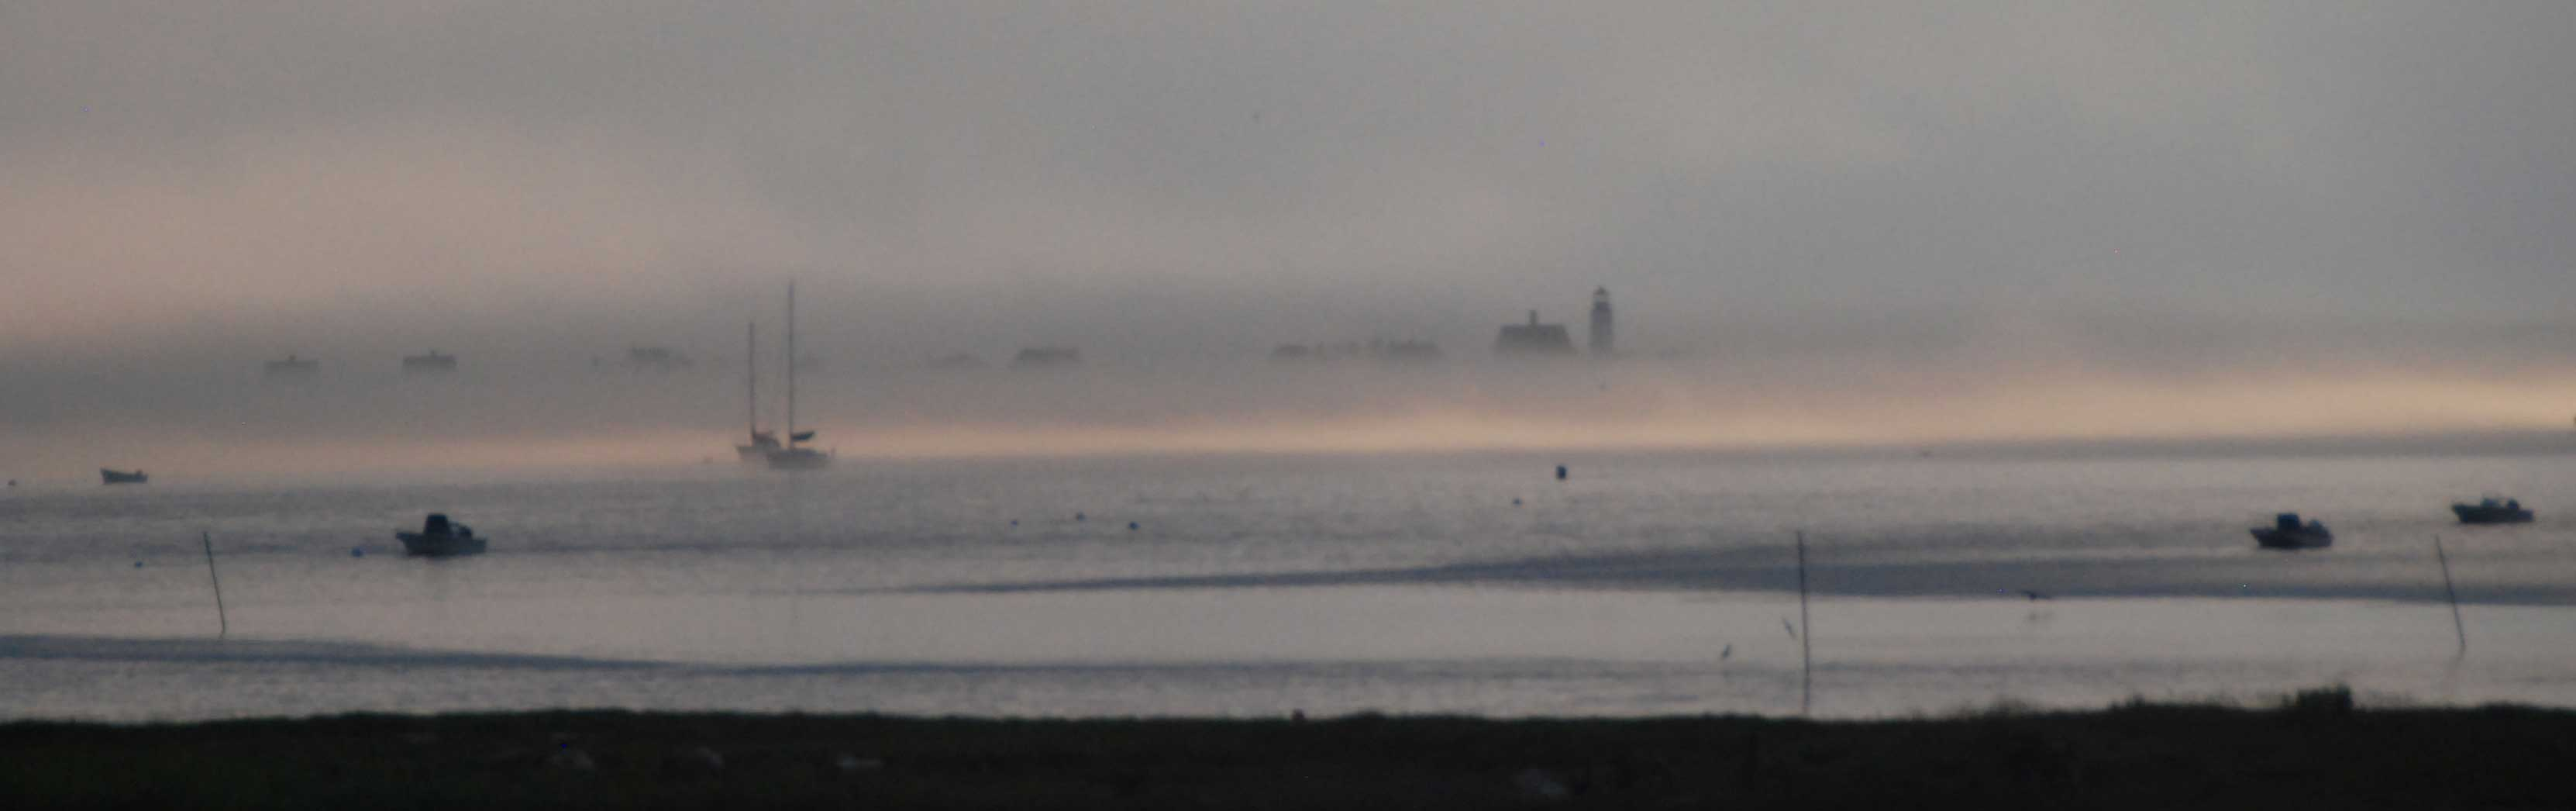 Foggy-Lighthouse-Crop